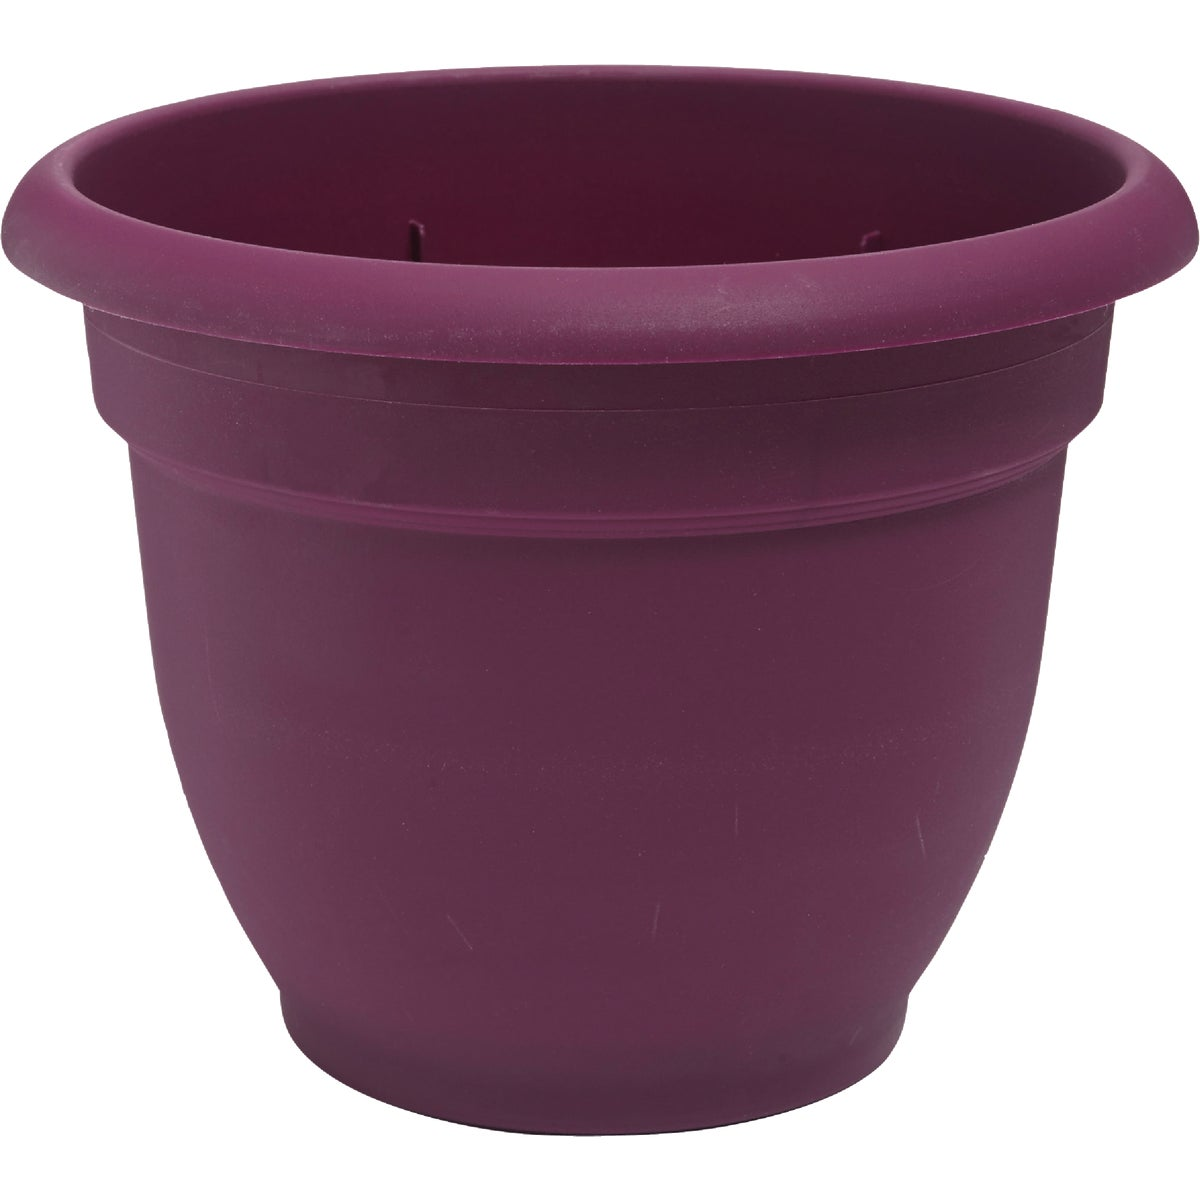 "6"" FUSIA ARIANA POT - 465063-1001 by Fiskars Brands Inc"